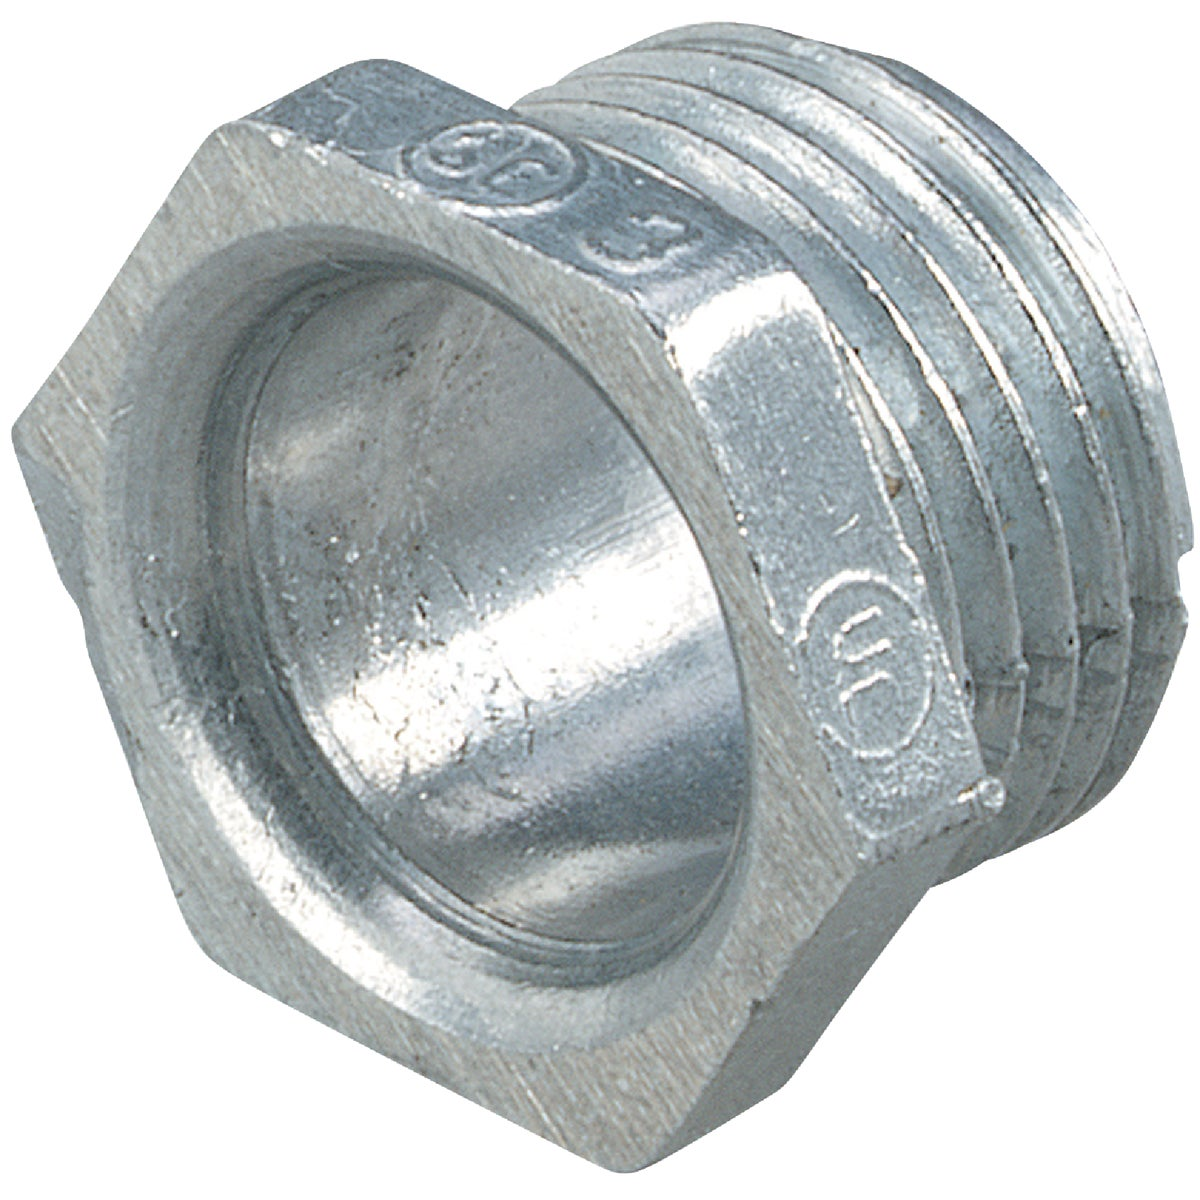 "3/4"" CONDUIT NIPPLE - HA2022 by Thomas & Betts"